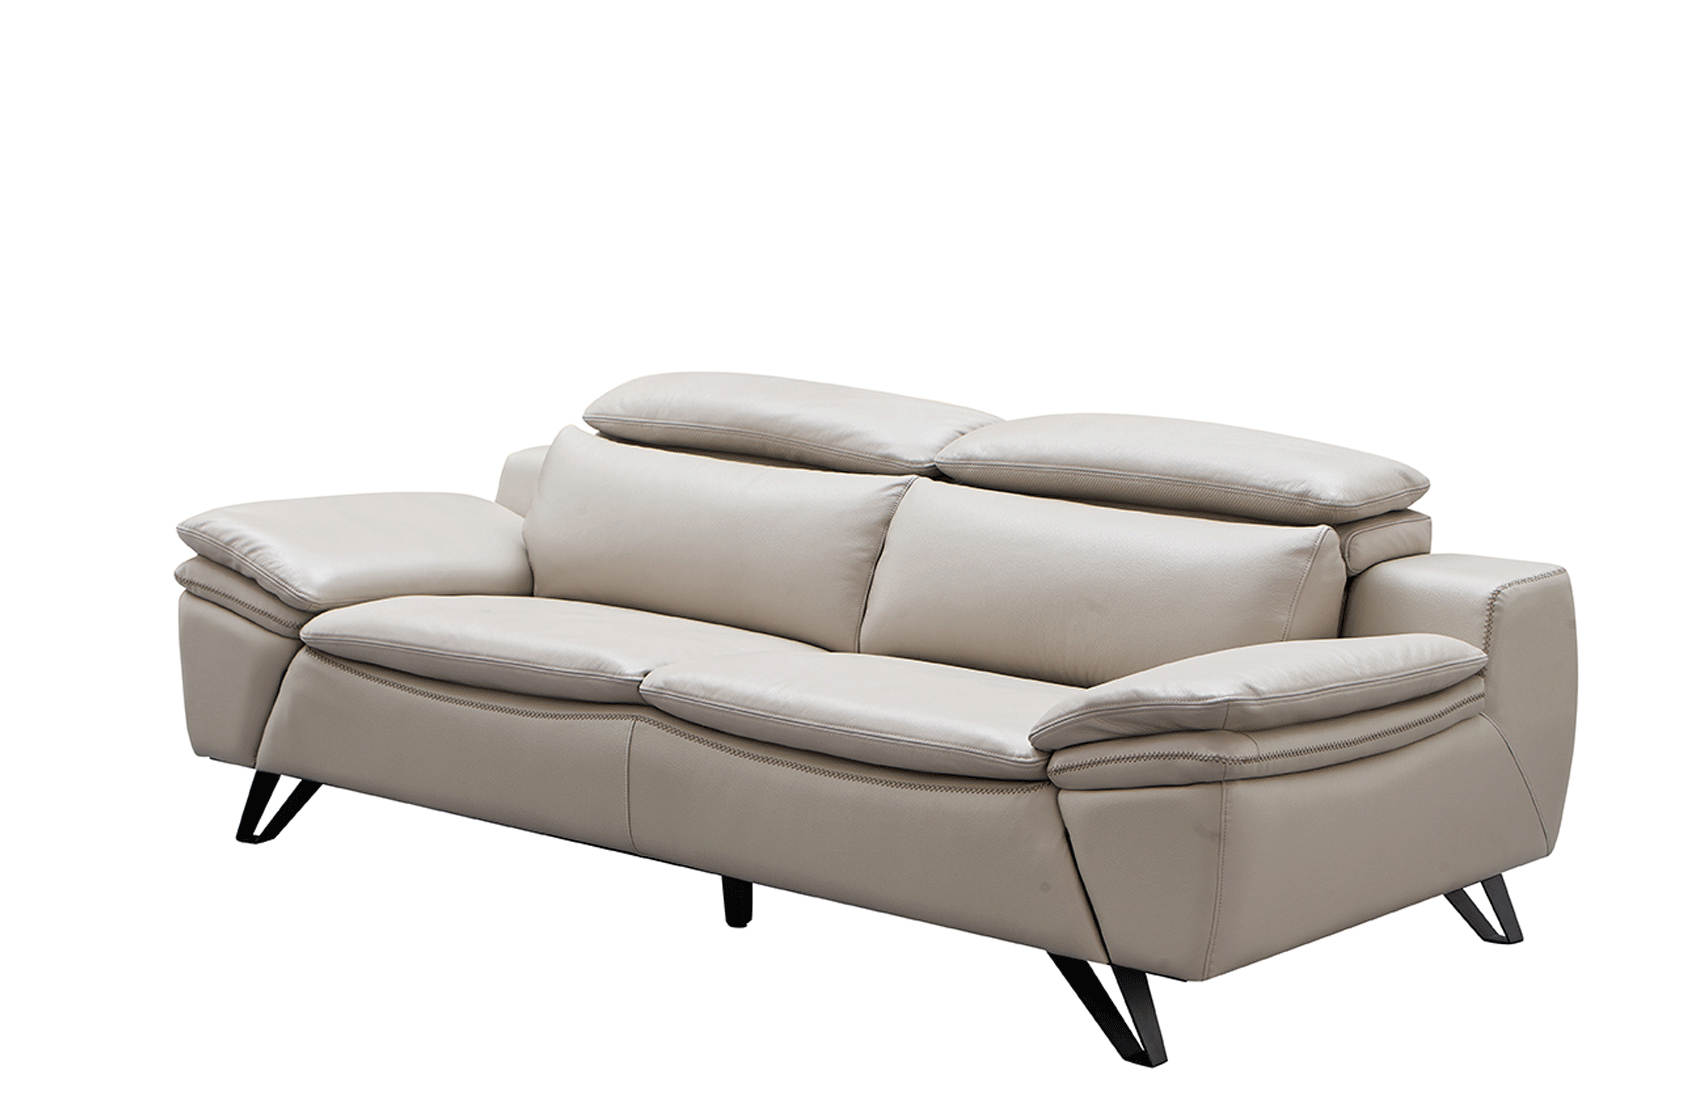 Enjoyable Esf Extravaganza 973 Light Grey Leather Sofa The Classy Home Home Interior And Landscaping Pimpapssignezvosmurscom